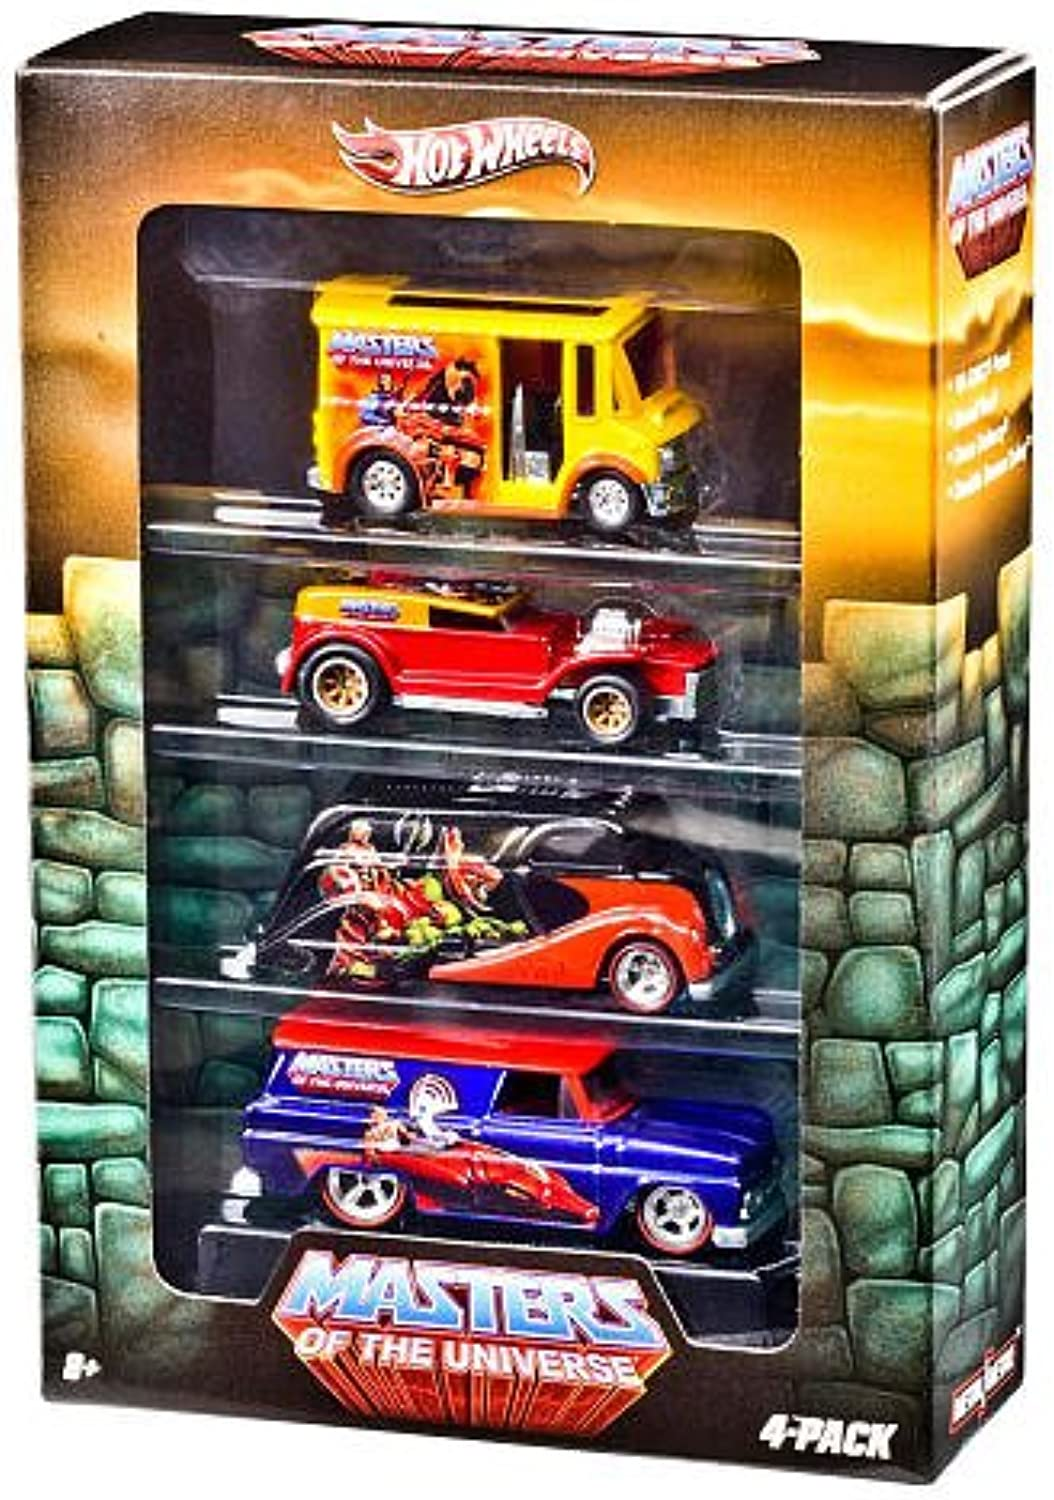 Hot Wheels Nostalgia Series Vehicle 4Pack  HOT WHEELS MASTERS OF THE UNIVERSE DIE CAST COLLECTORS SET OF 4